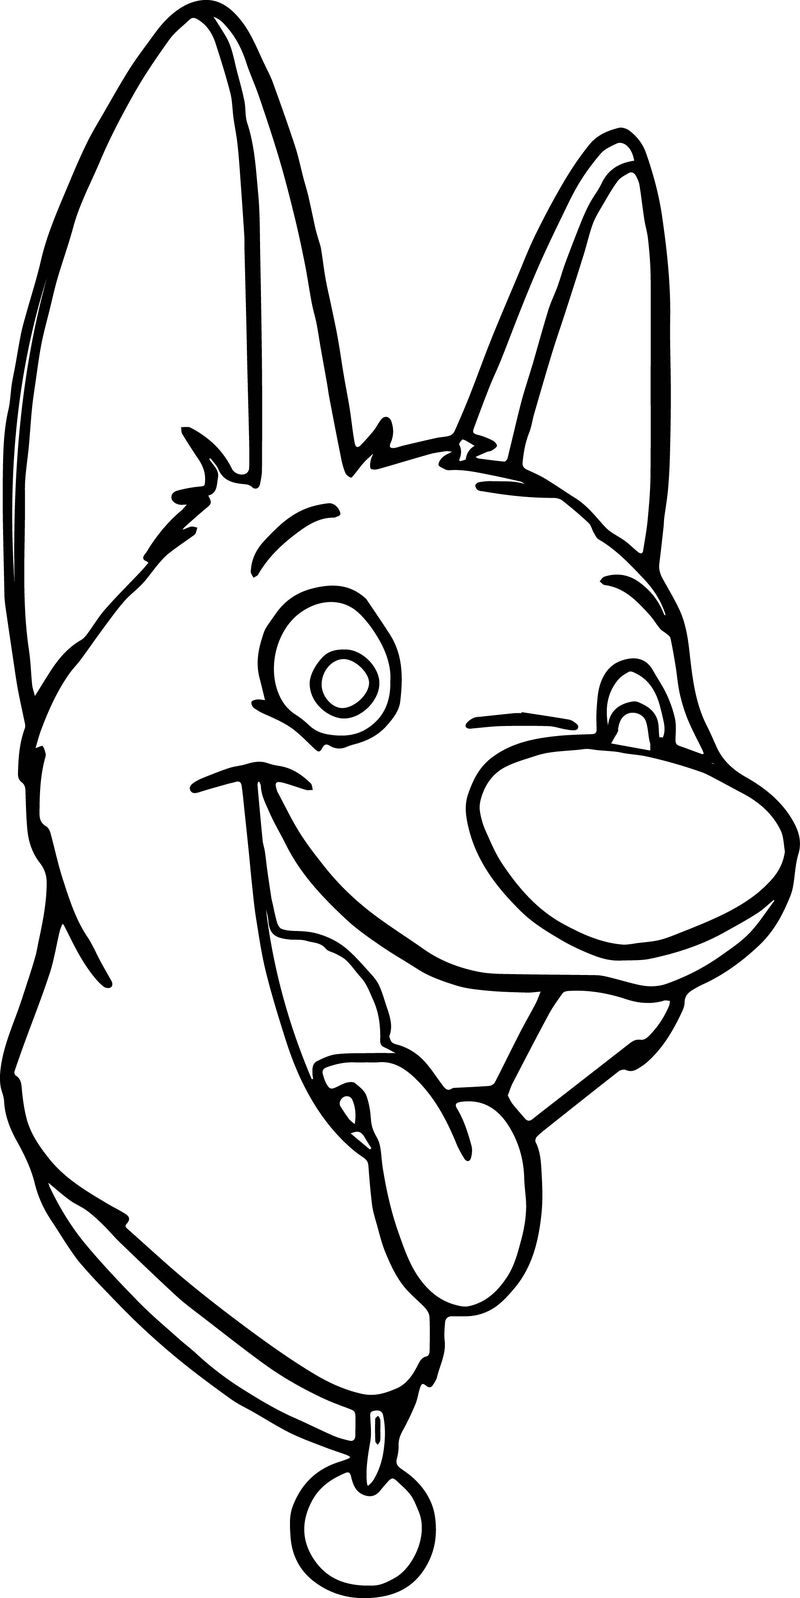 Bolt the dog black and white clipart graphic freeuse stock Bolt Dog Face Coloring Pages » Printable Coloring Pages For Kids graphic freeuse stock